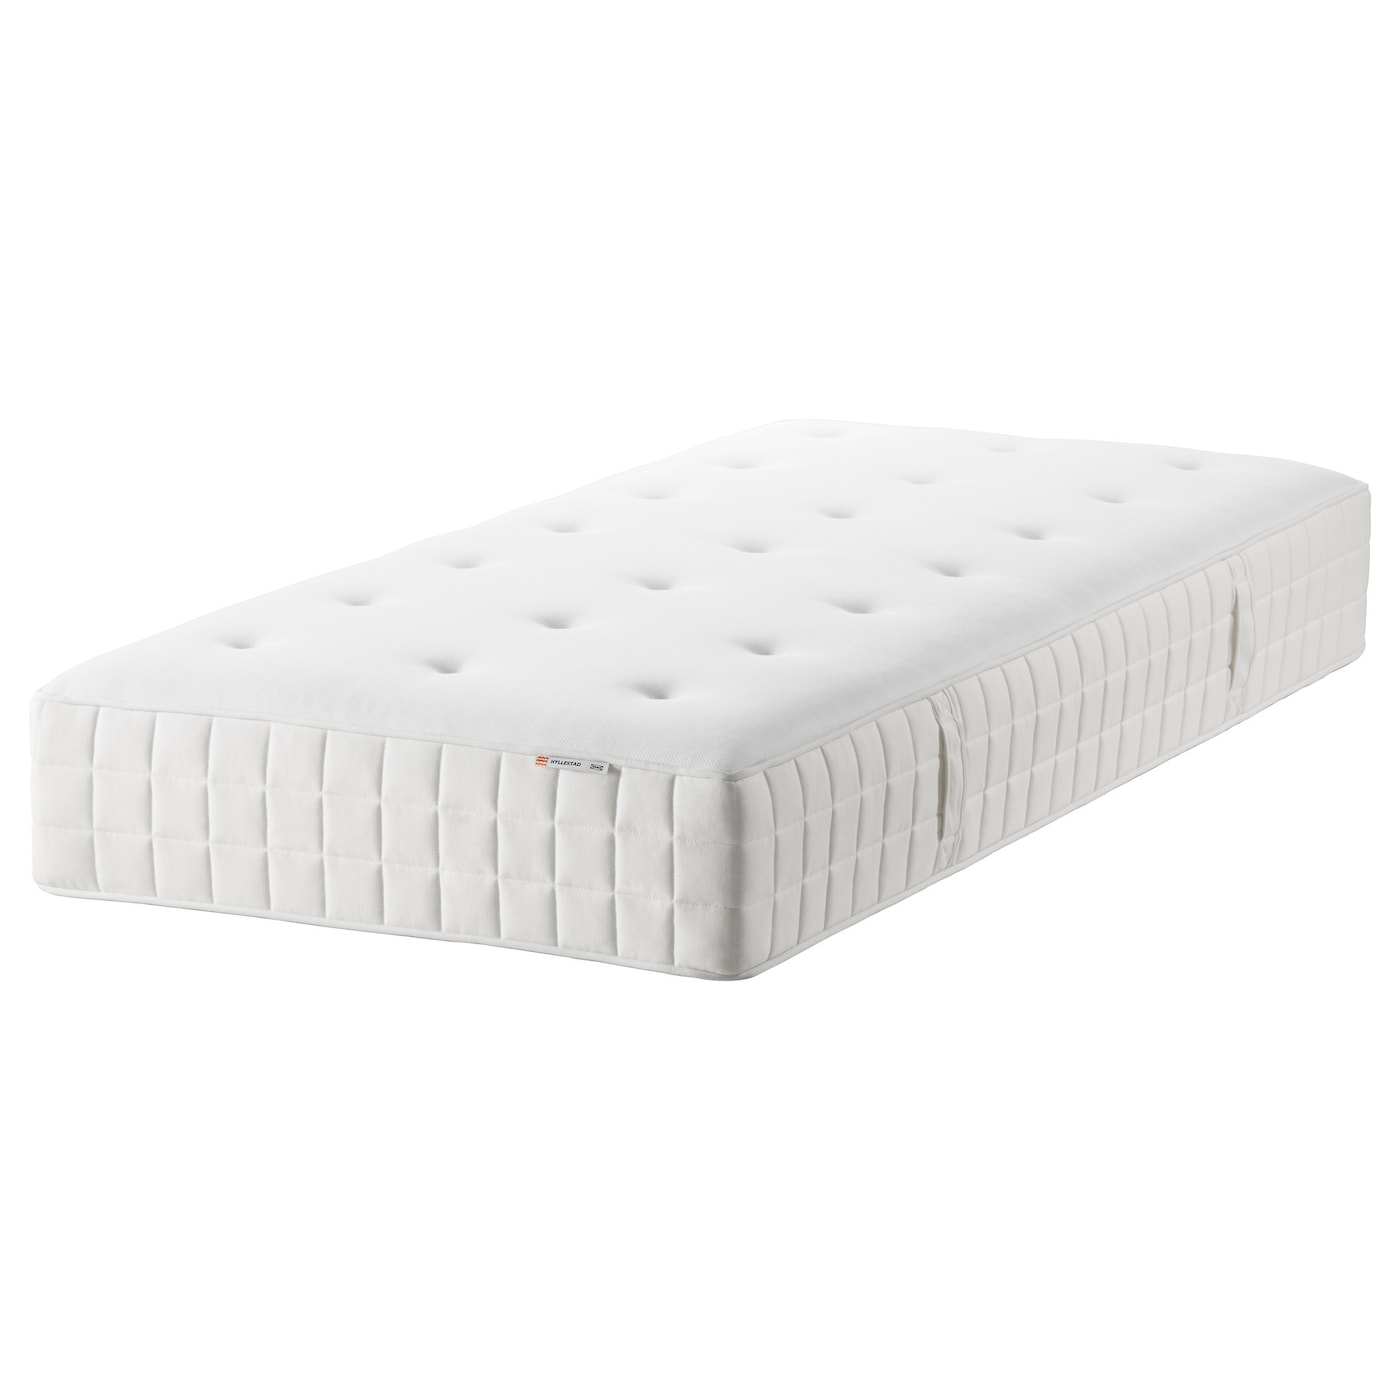 hyllestad matelas ressorts ensach s mi ferme blanc 90x200 cm ikea. Black Bedroom Furniture Sets. Home Design Ideas